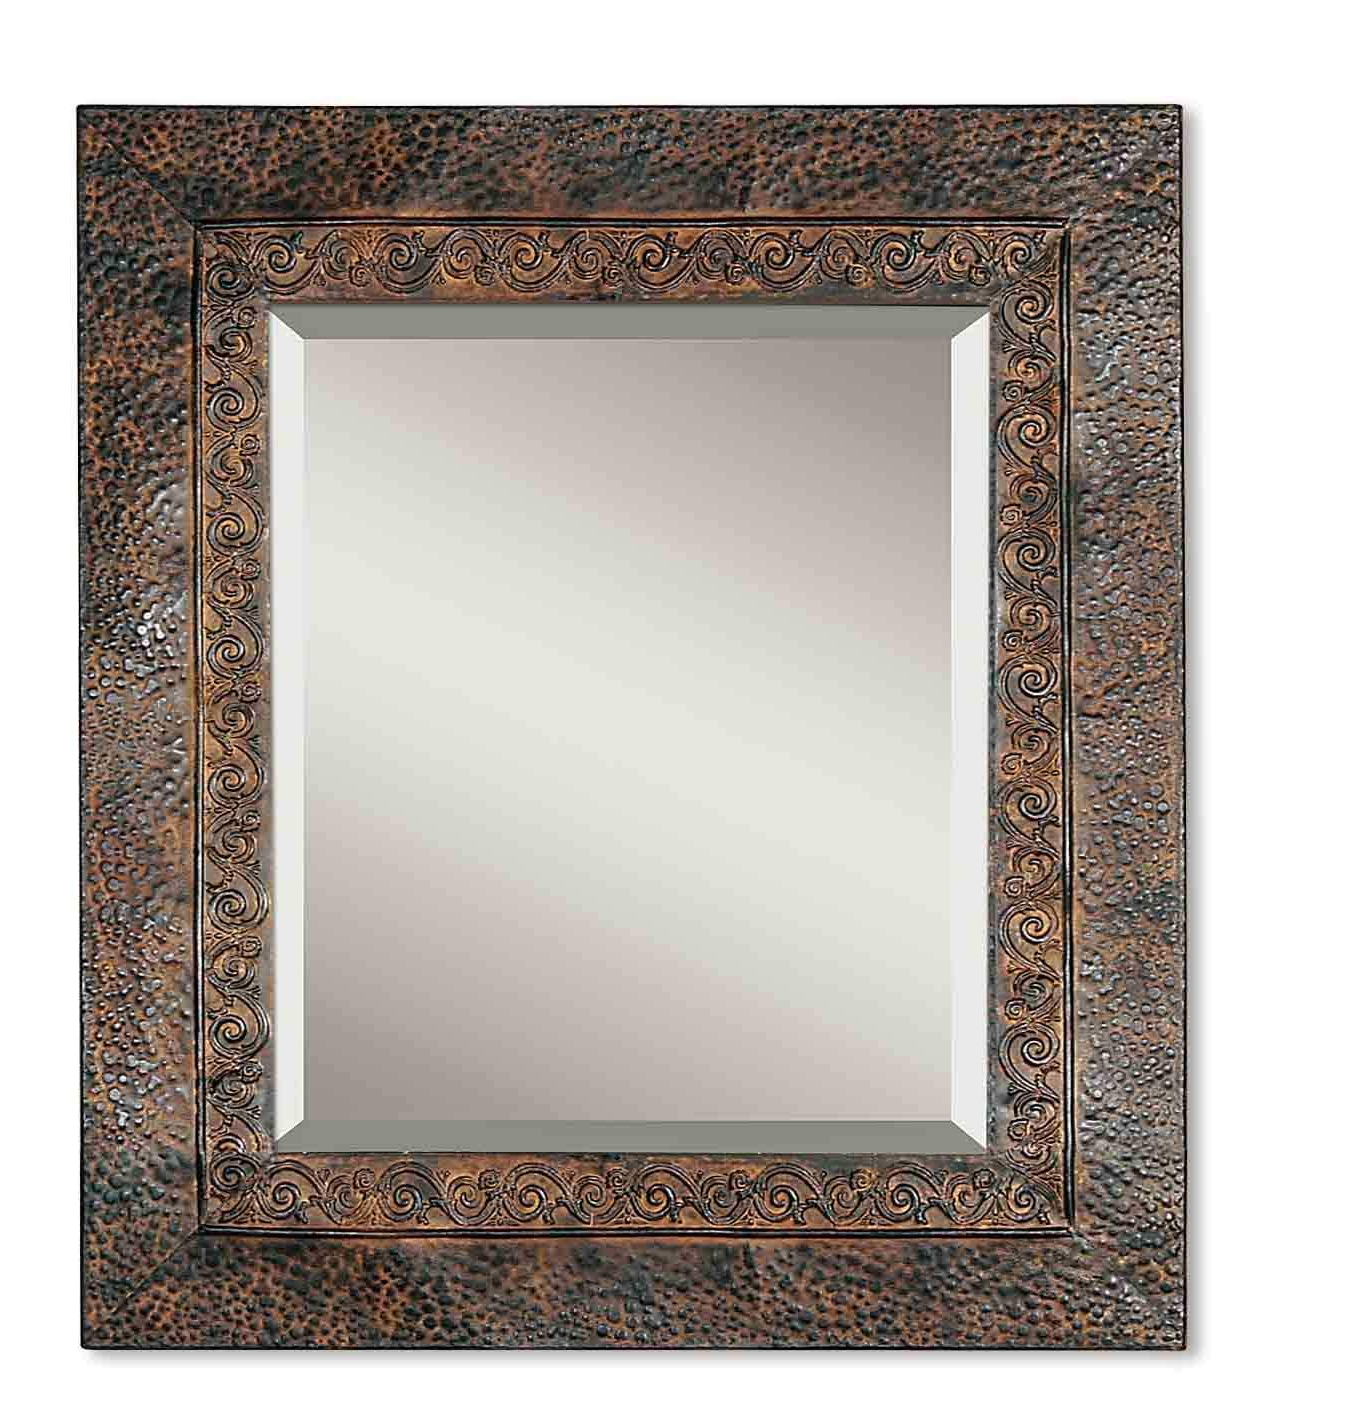 Tuscan Style Wall Mirrors With Regard To Most Recently Released Amazon: Zinc Decor Mediterranean Metal Brown Tuscan Beveled Wall (View 5 of 20)